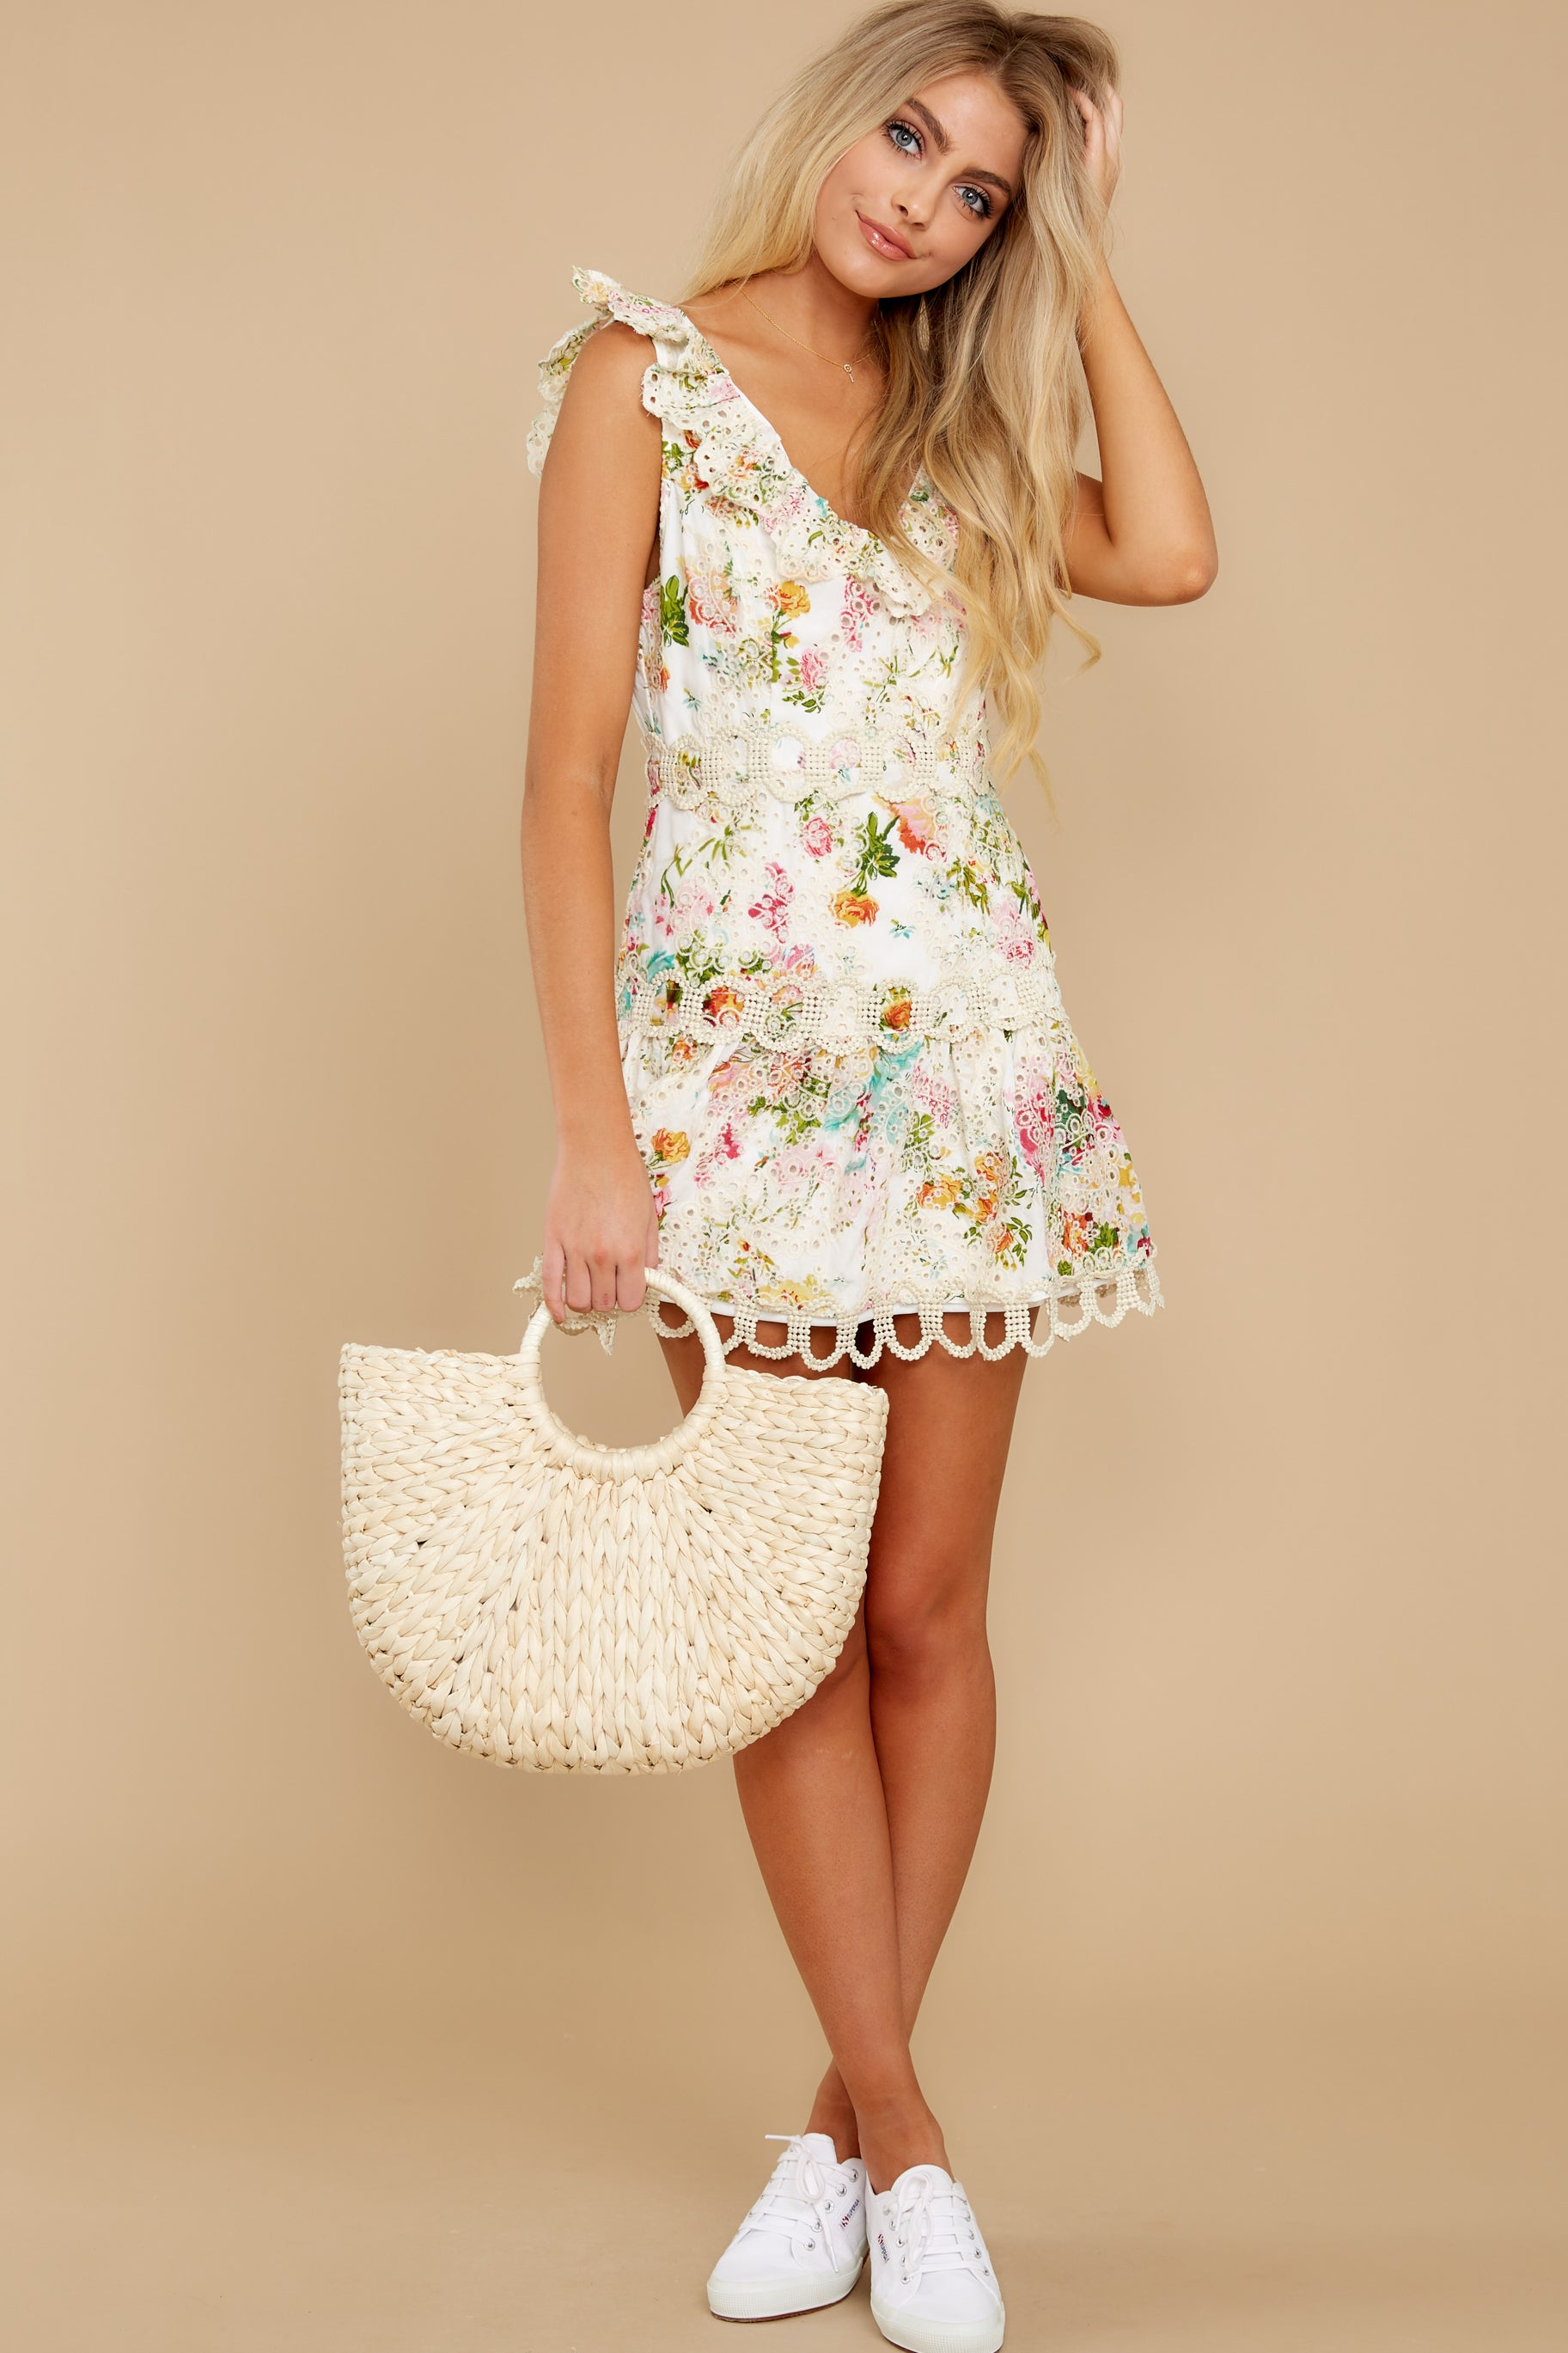 4 Looking For The One Floral Eyelet Dress at reddress.com